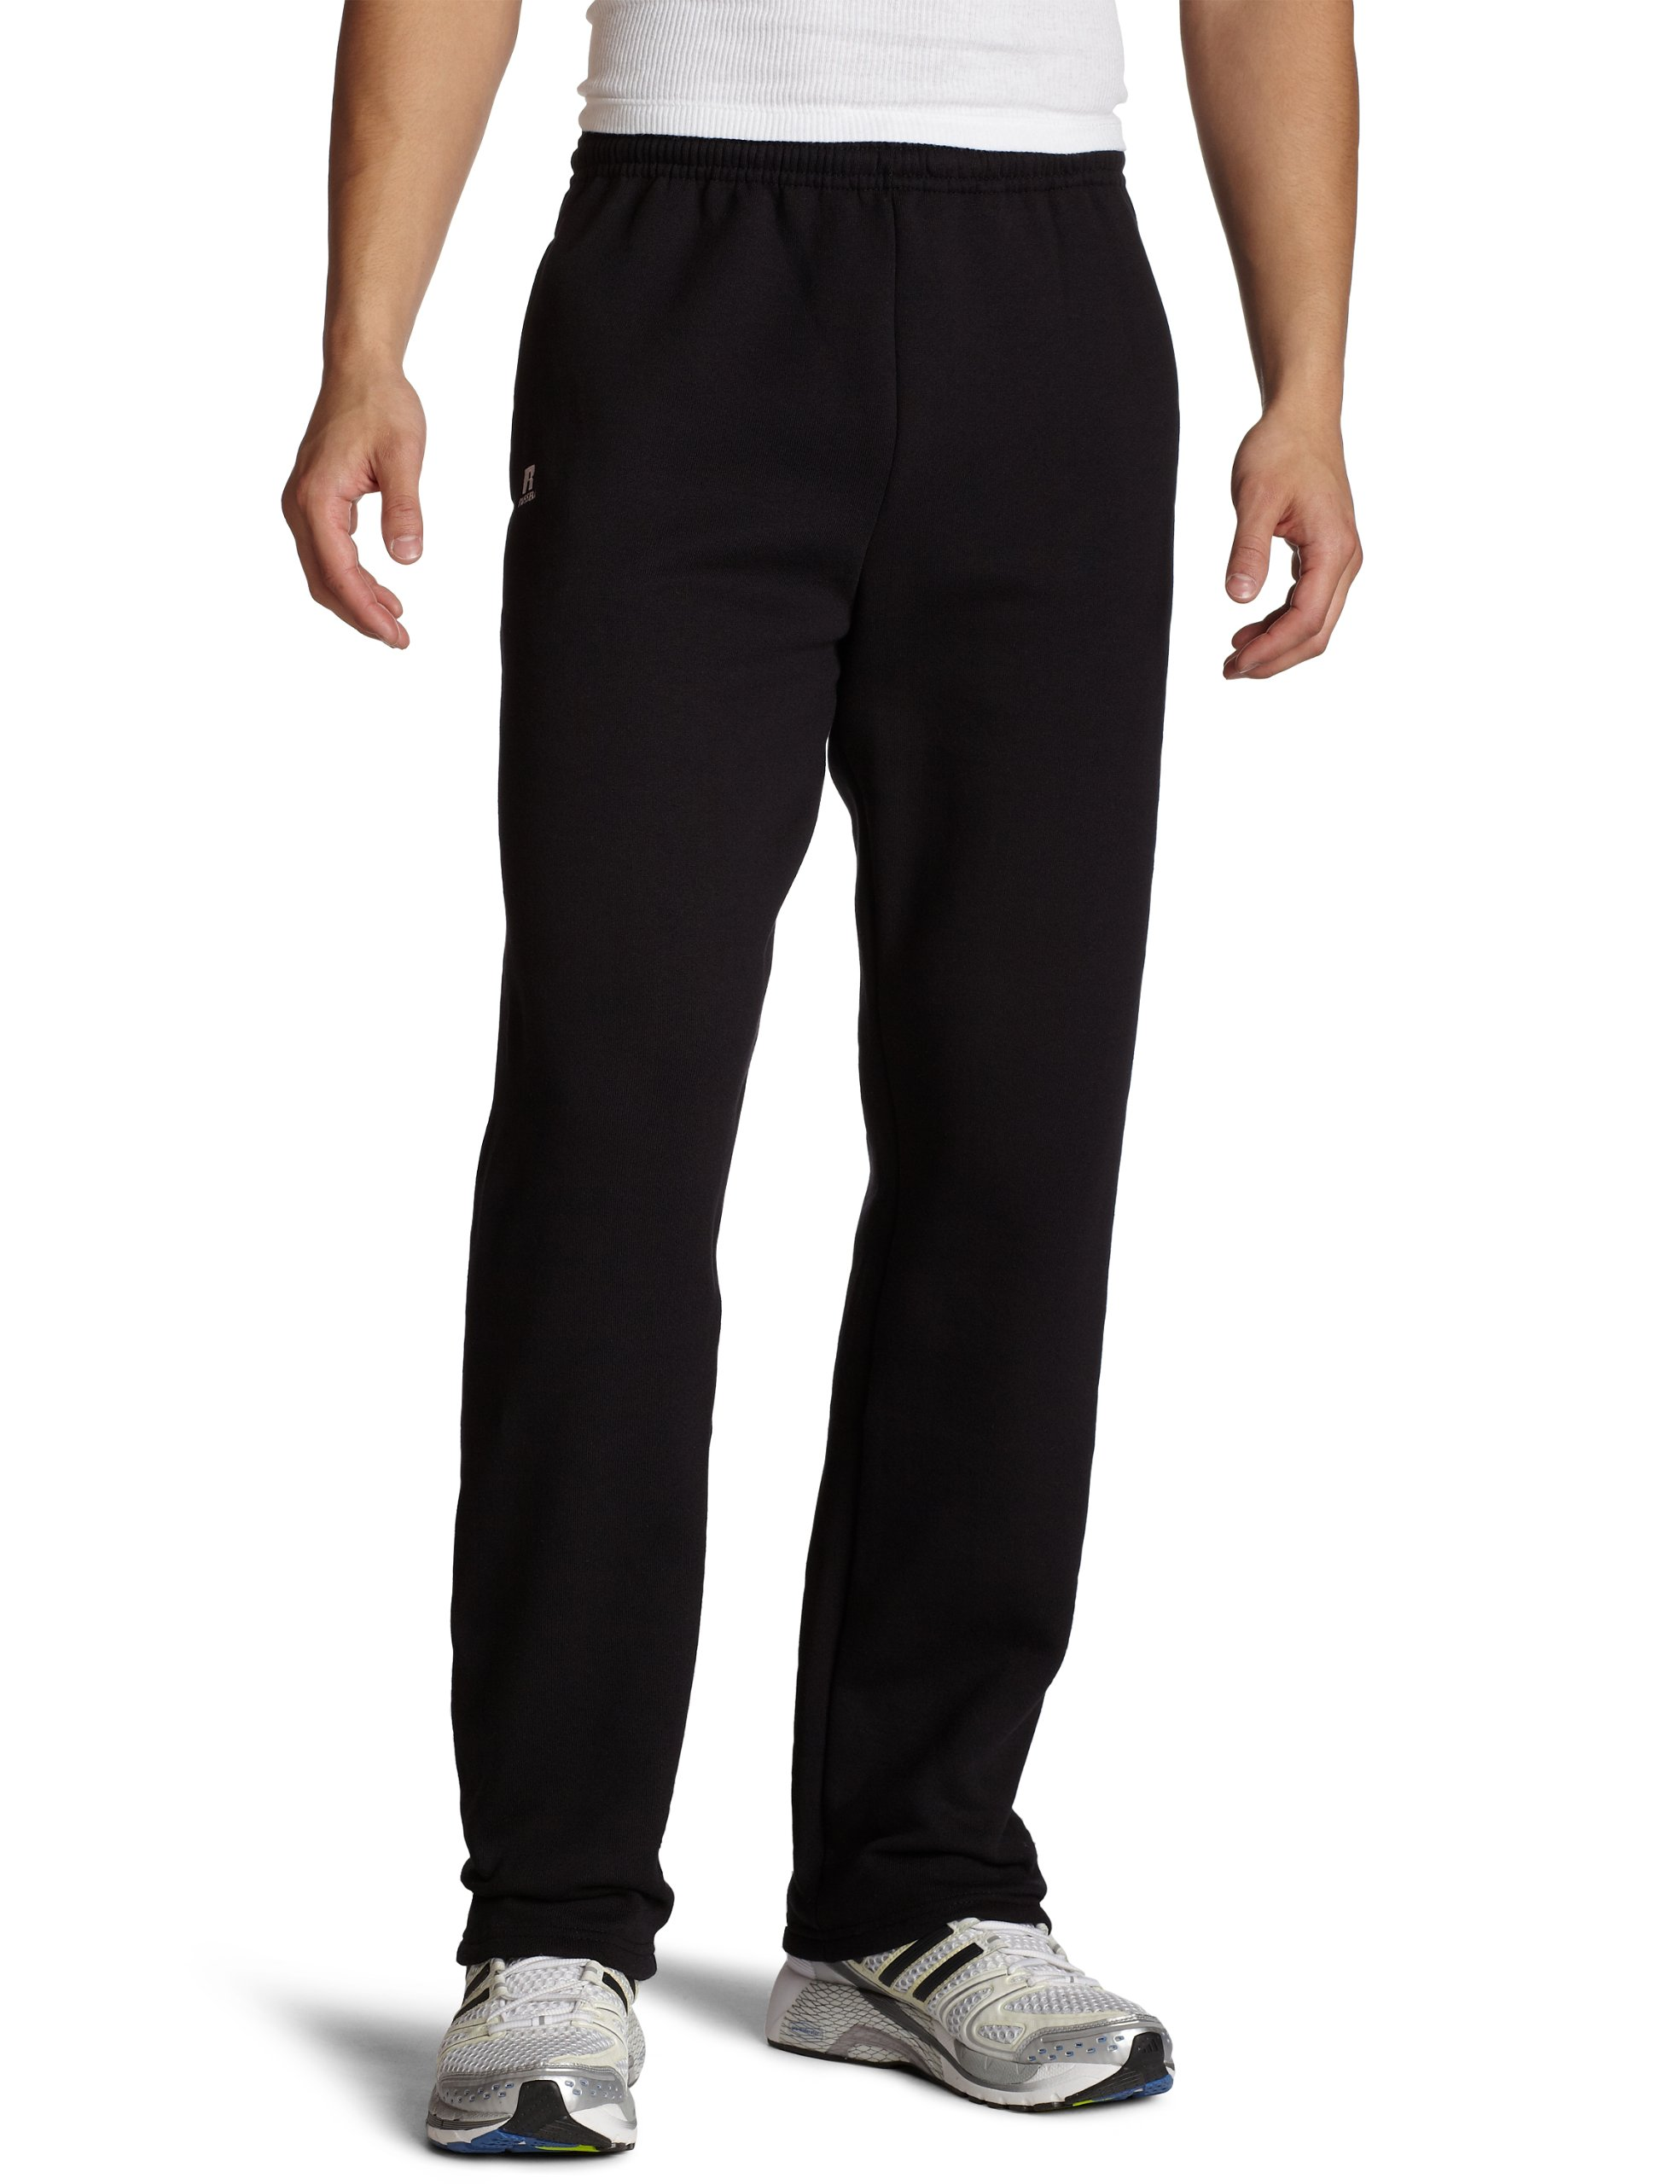 Russell Athletic Men's Dri-Power Open Bottom Sweatpants with Pockets, Black, X-Large